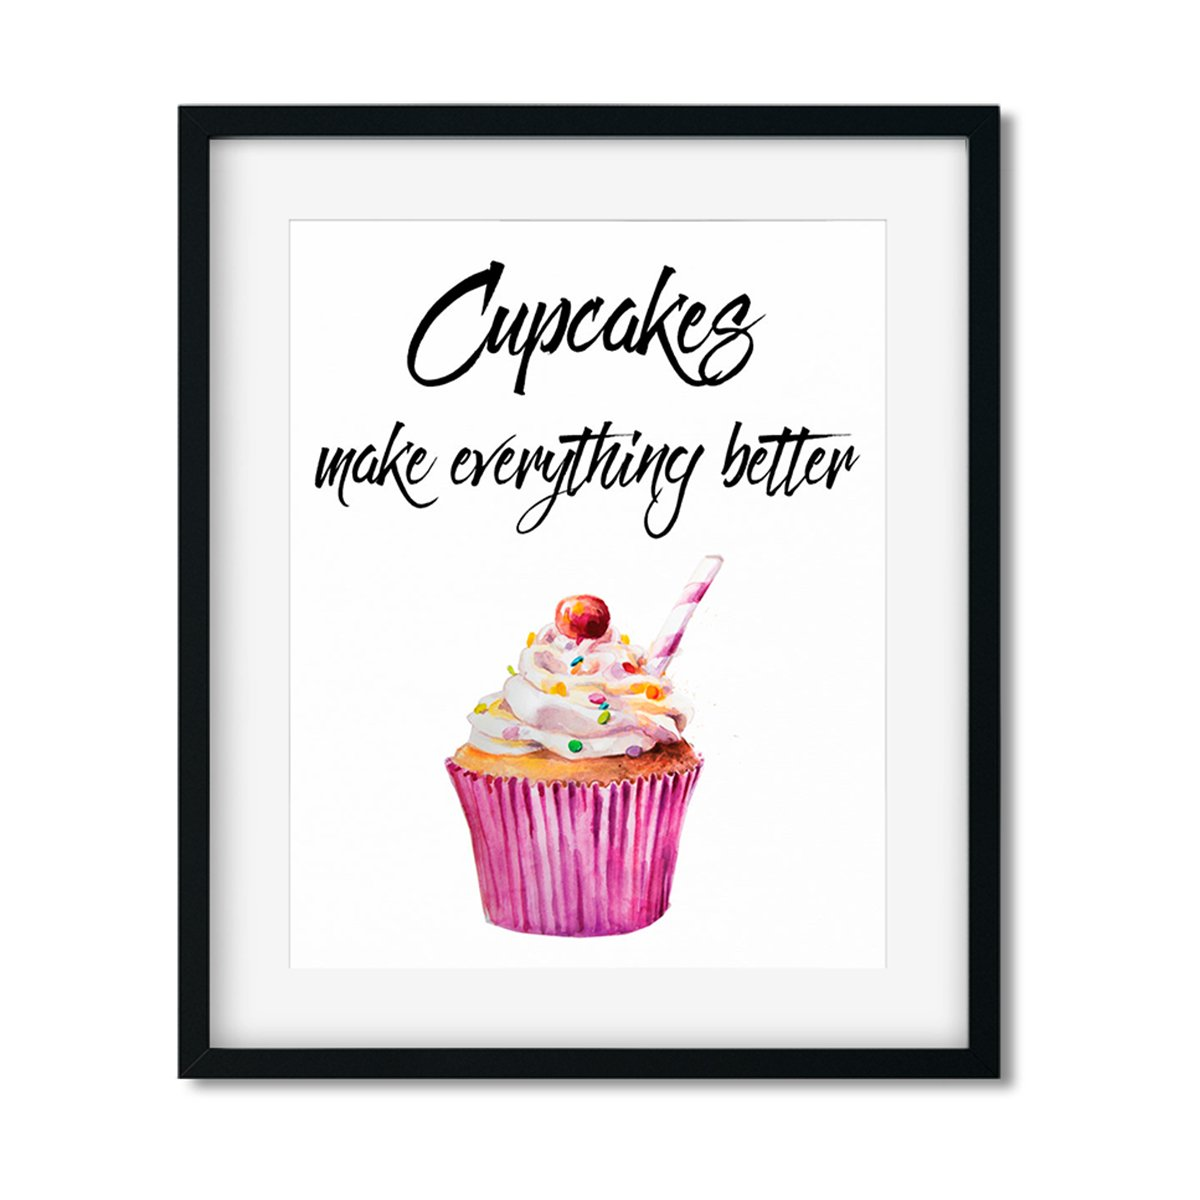 Cupcakes make everything better - Art Print - Netties Expressions